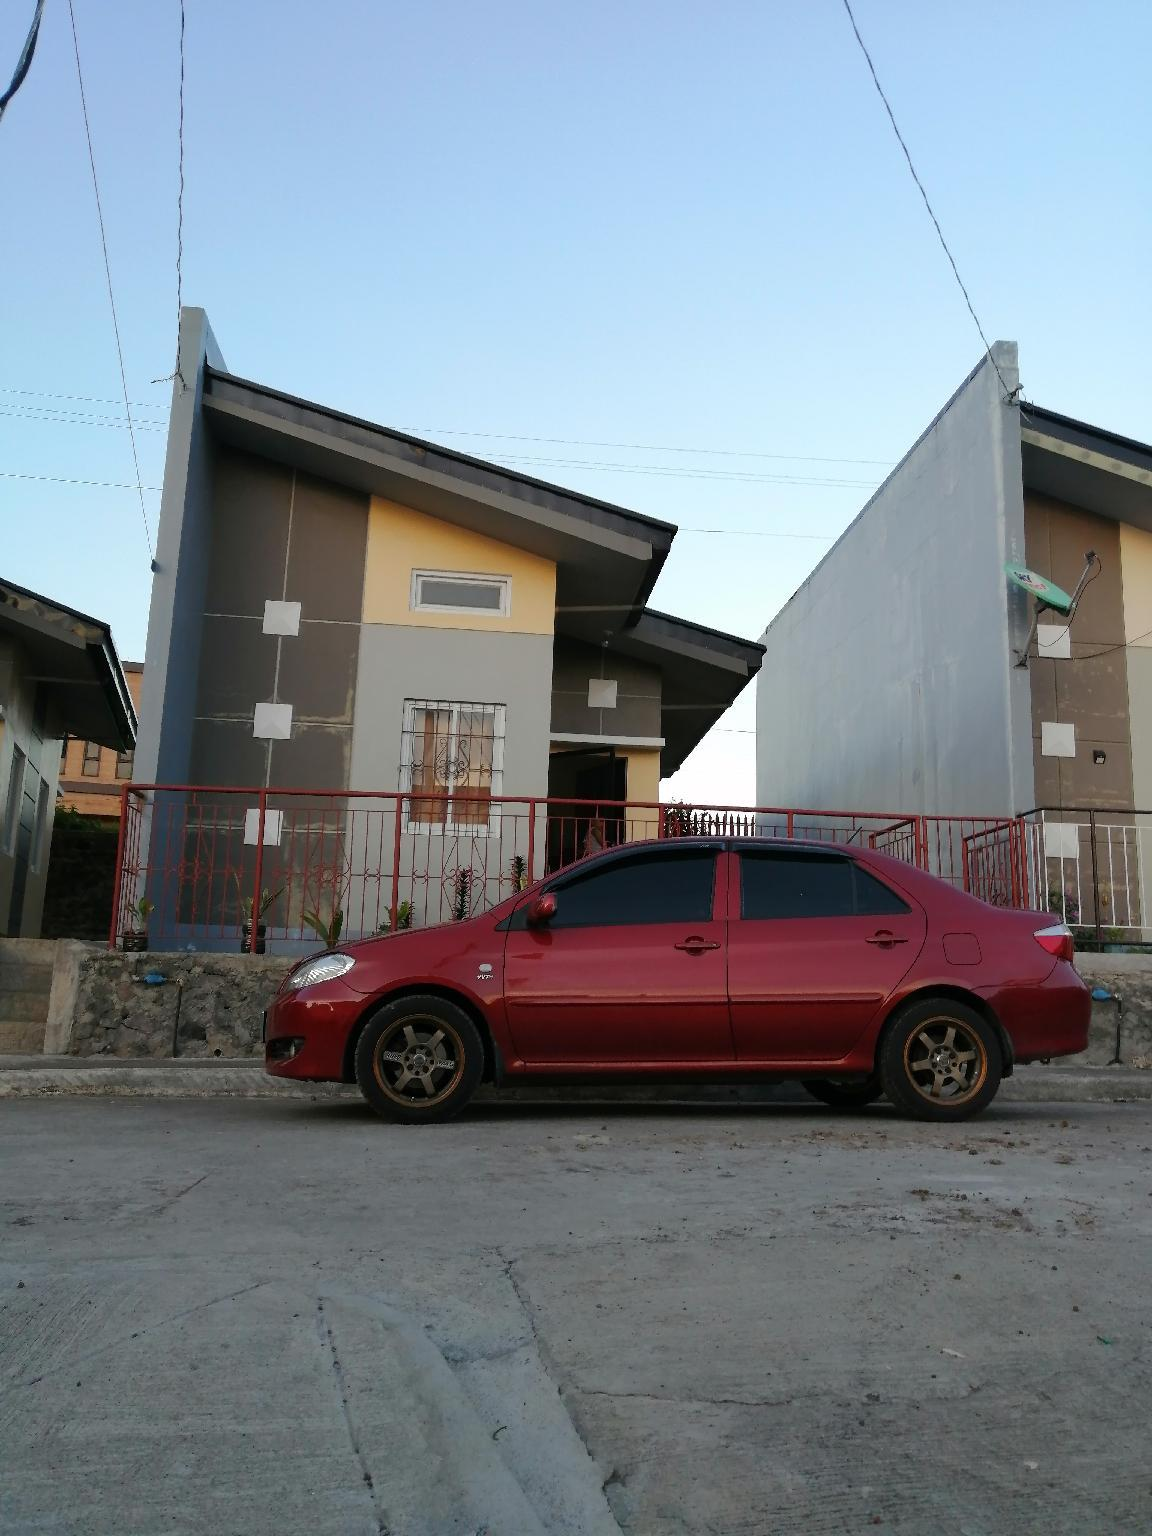 Uphill Overlooking House And Car Rental